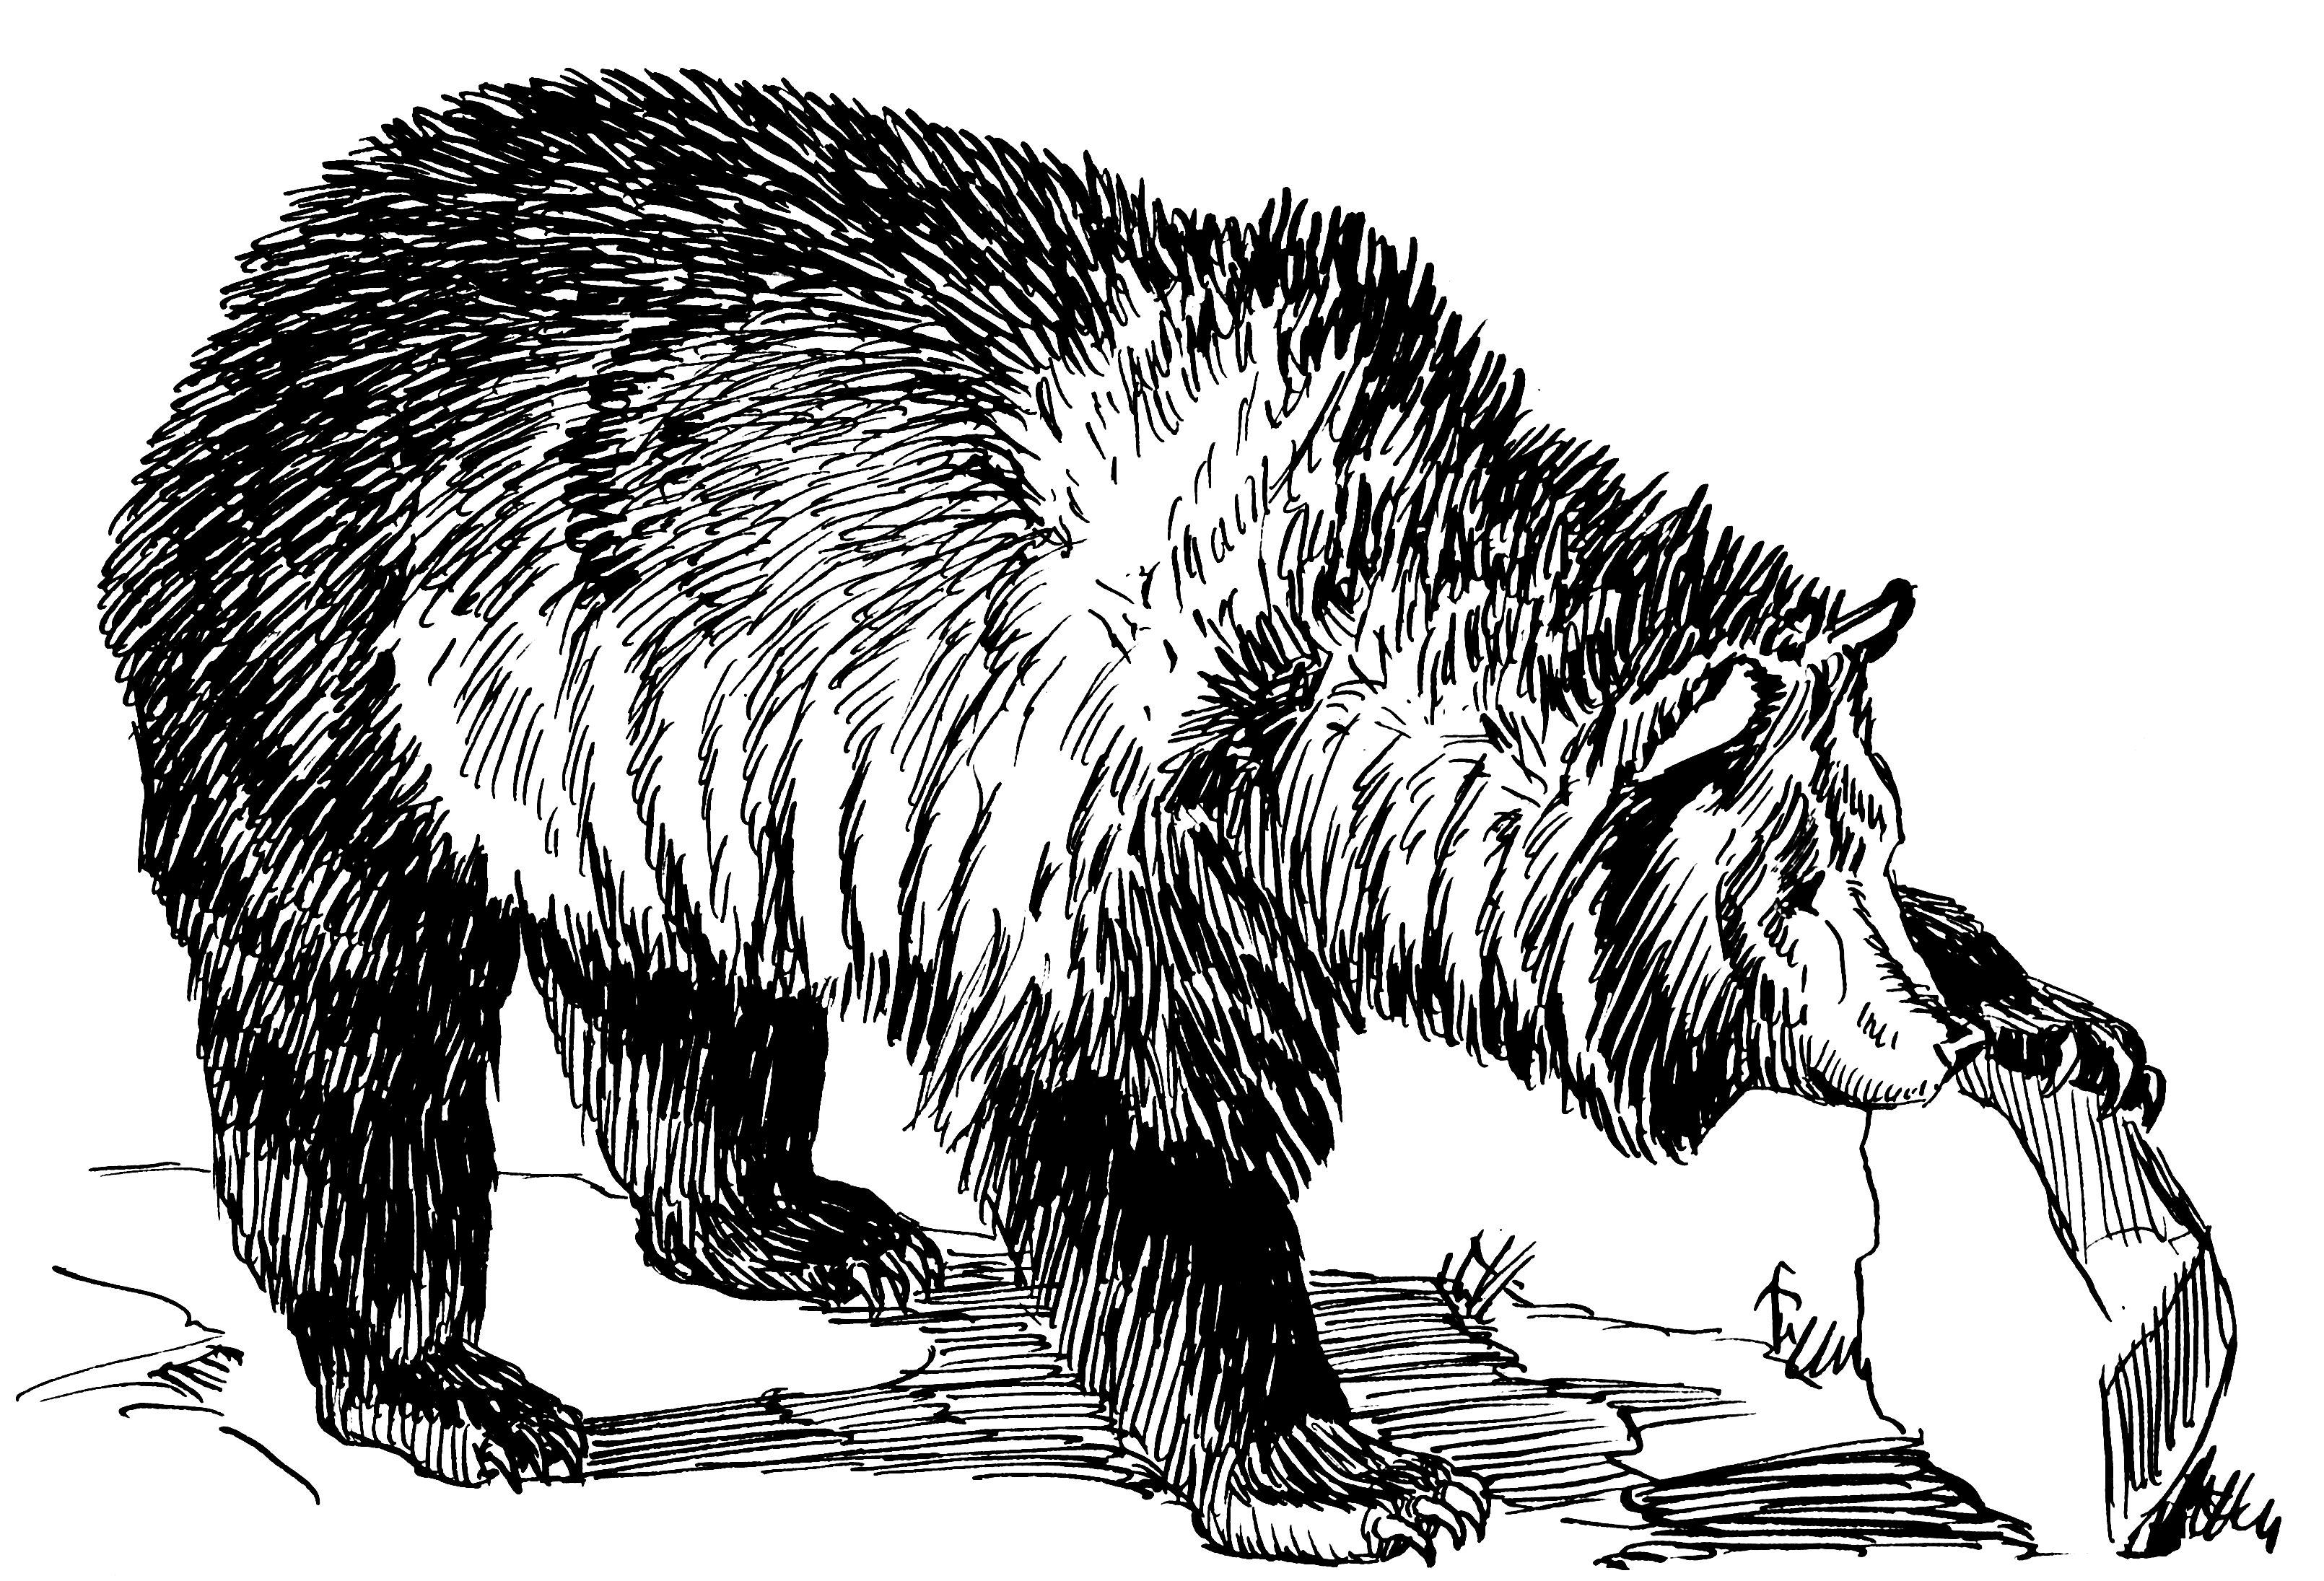 Grizzly Bear Drawing at GetDrawings.com | Free for personal use ...